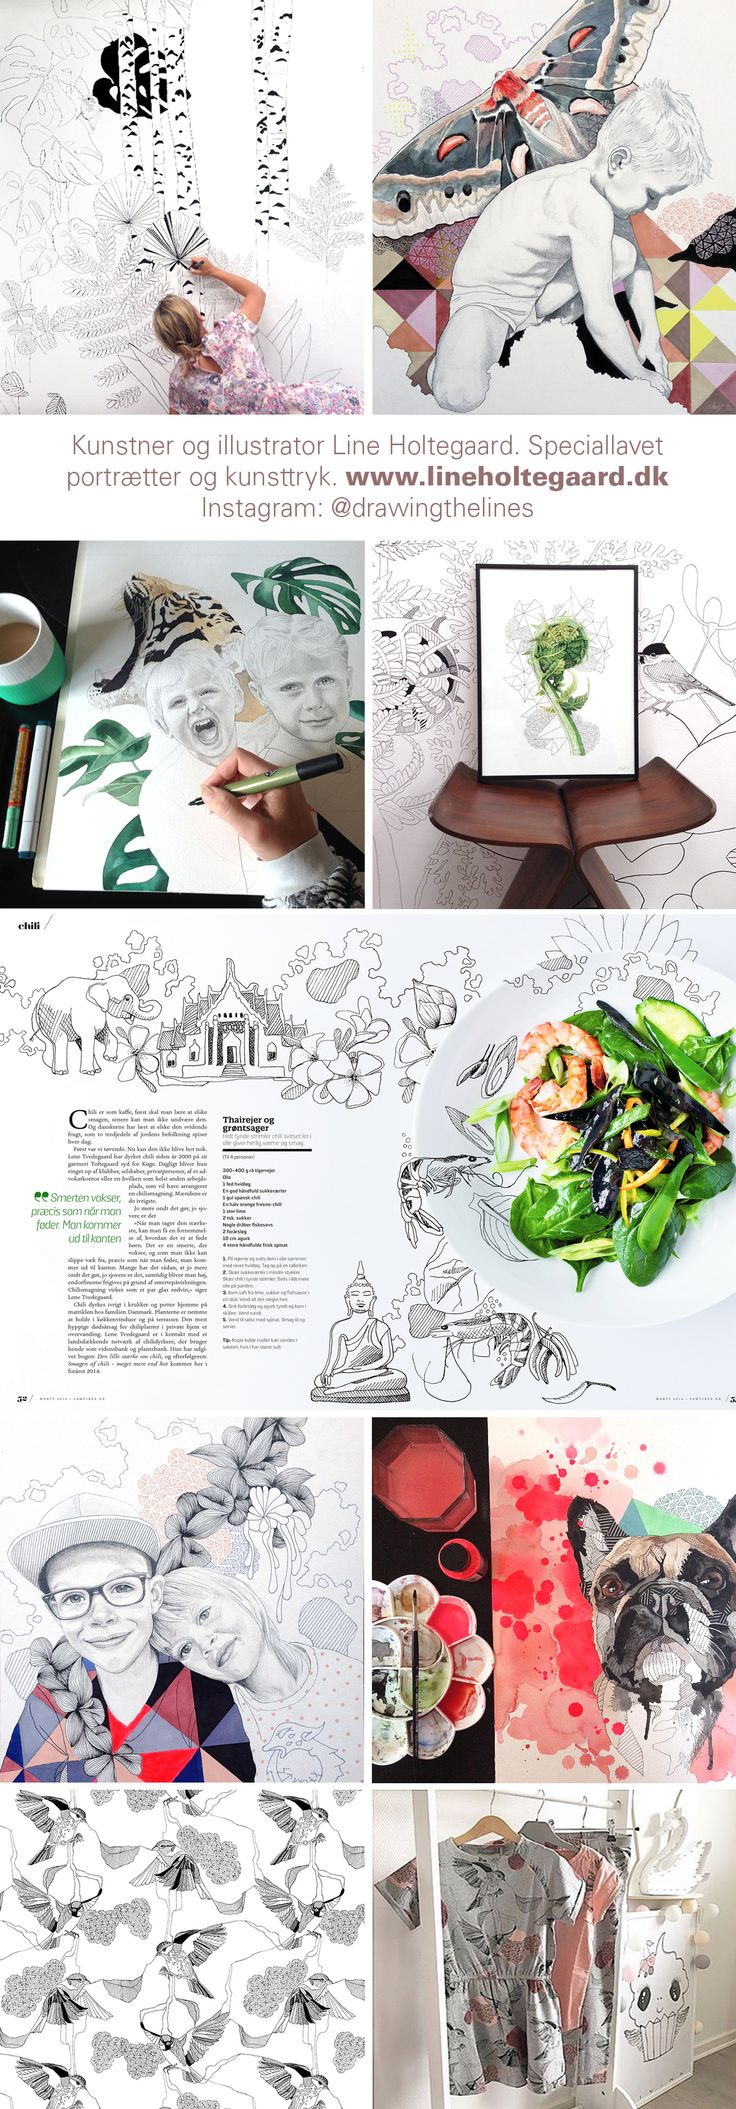 Art, murials, patterns, portraits illustrations for magazines by Line Holtegaard.